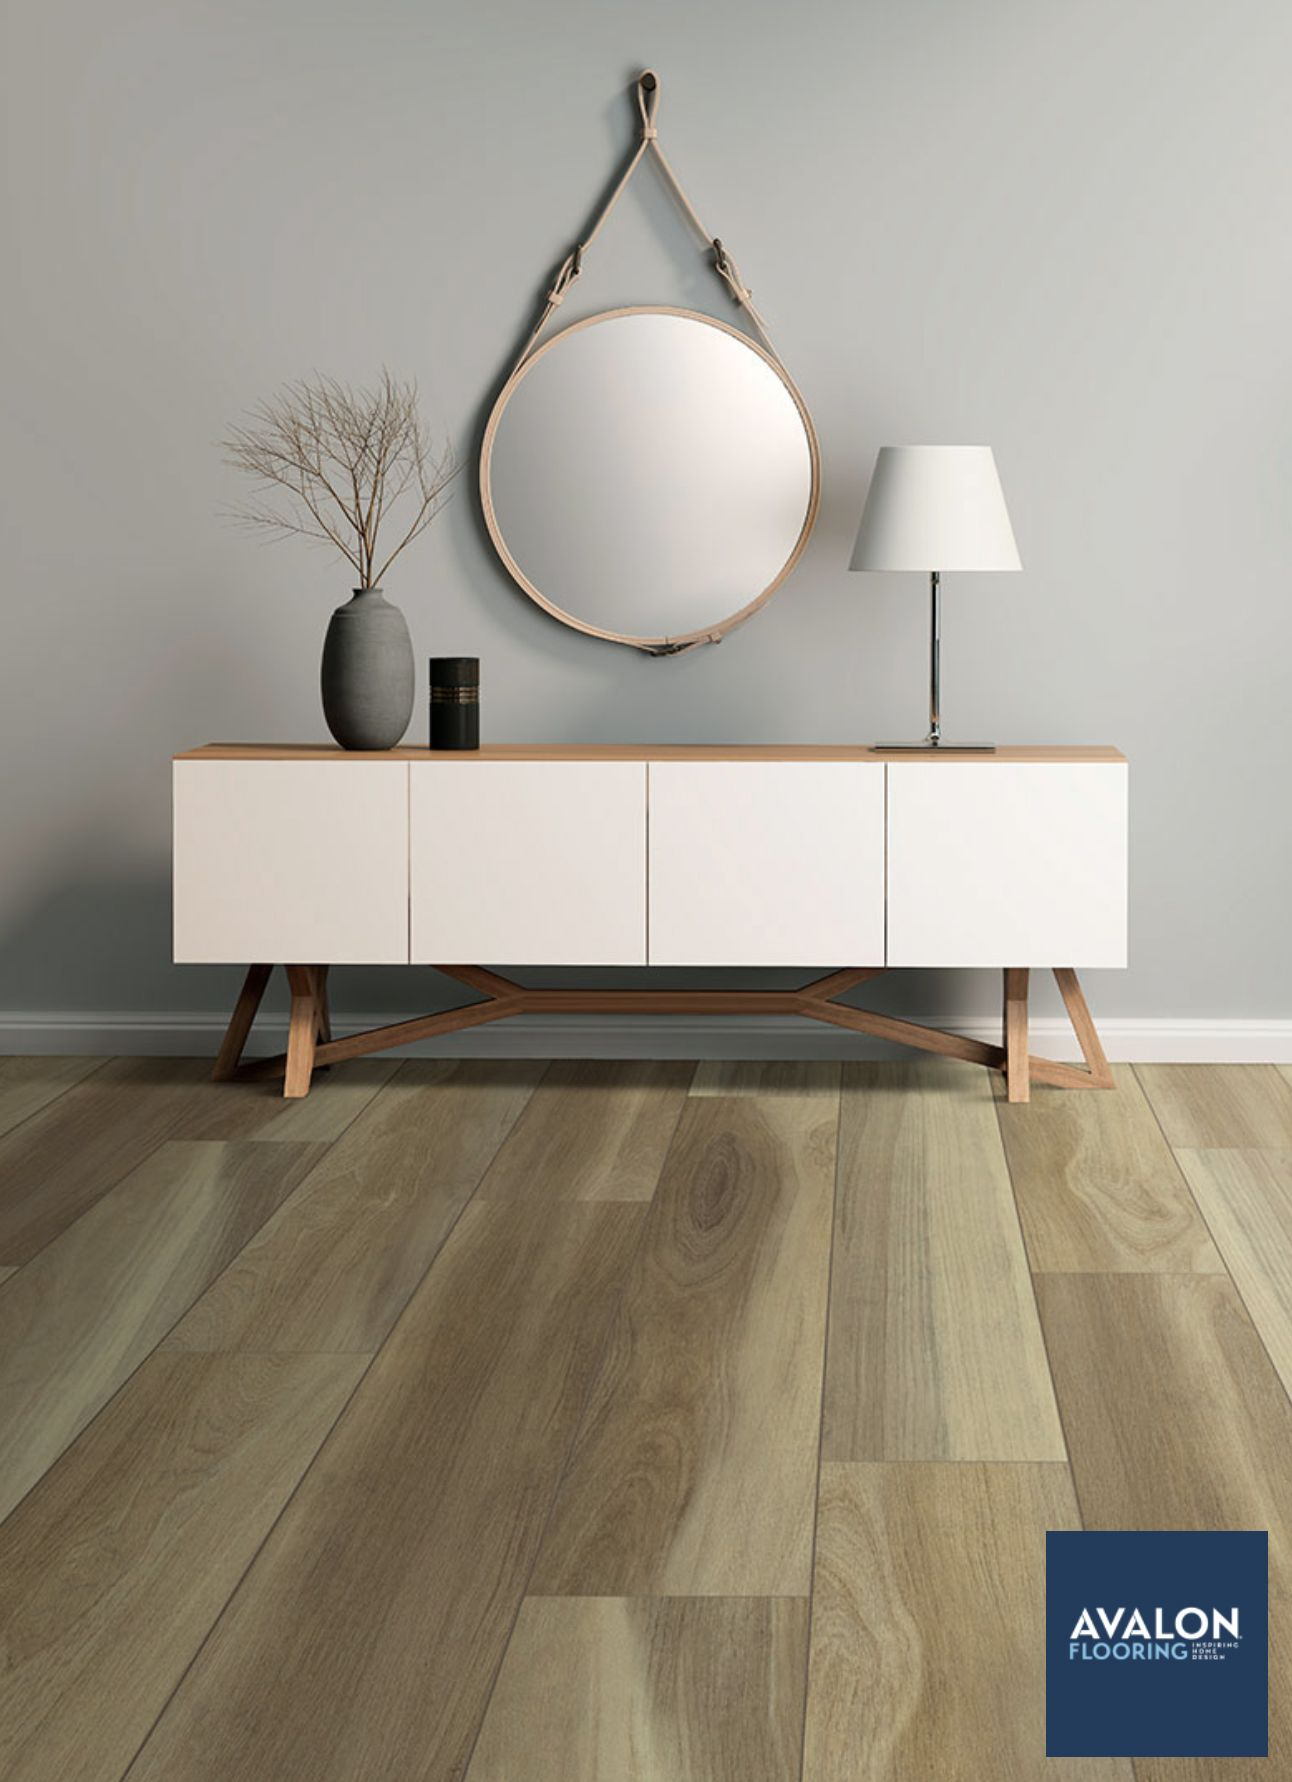 There's nothing like a beautiful, waterproof flooring like